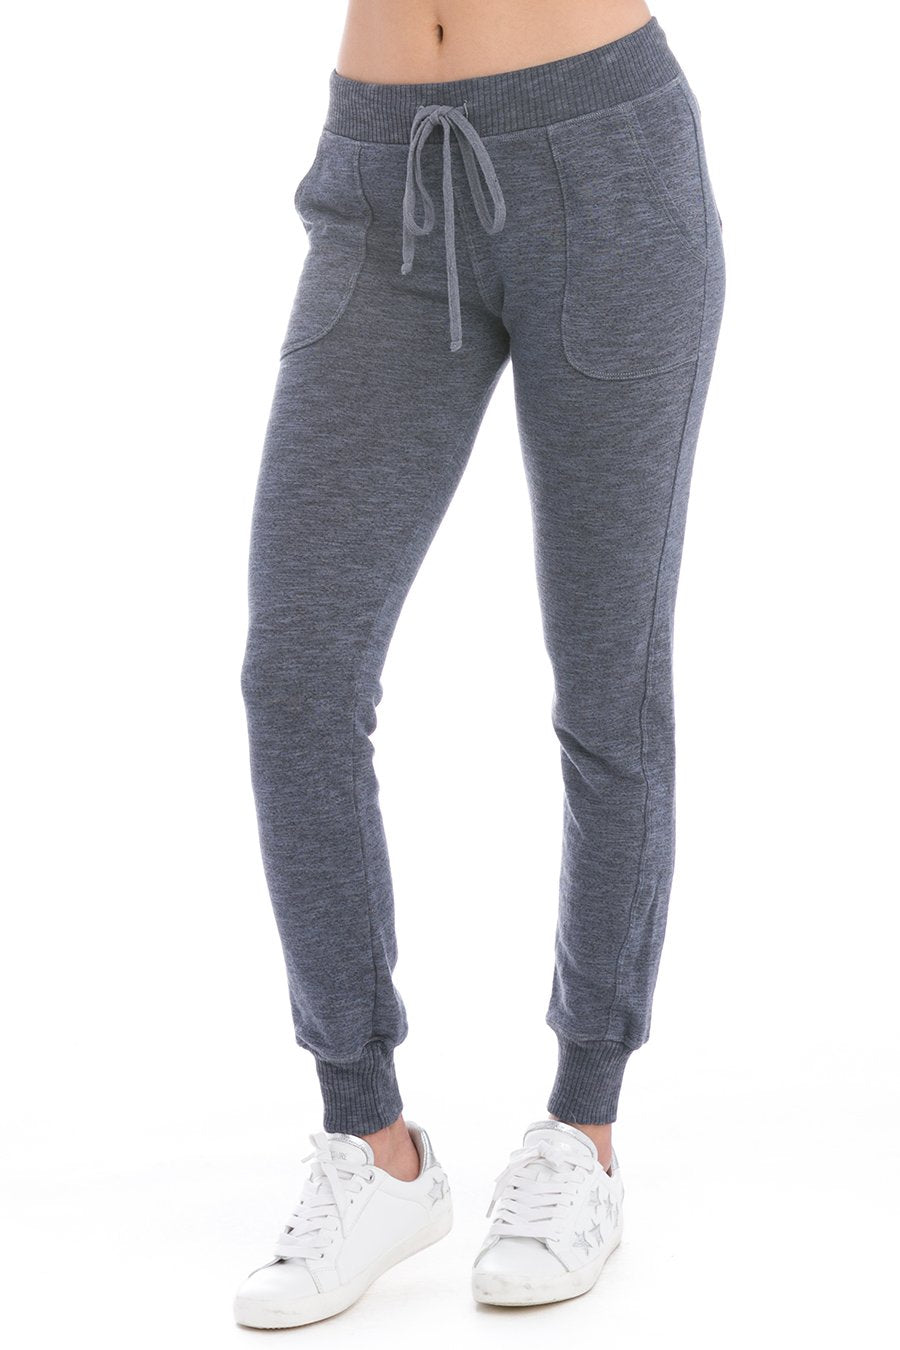 Hard Tail Forever Charcoal Vintage French Terry Ankle Jogger Pants - Dusk - M